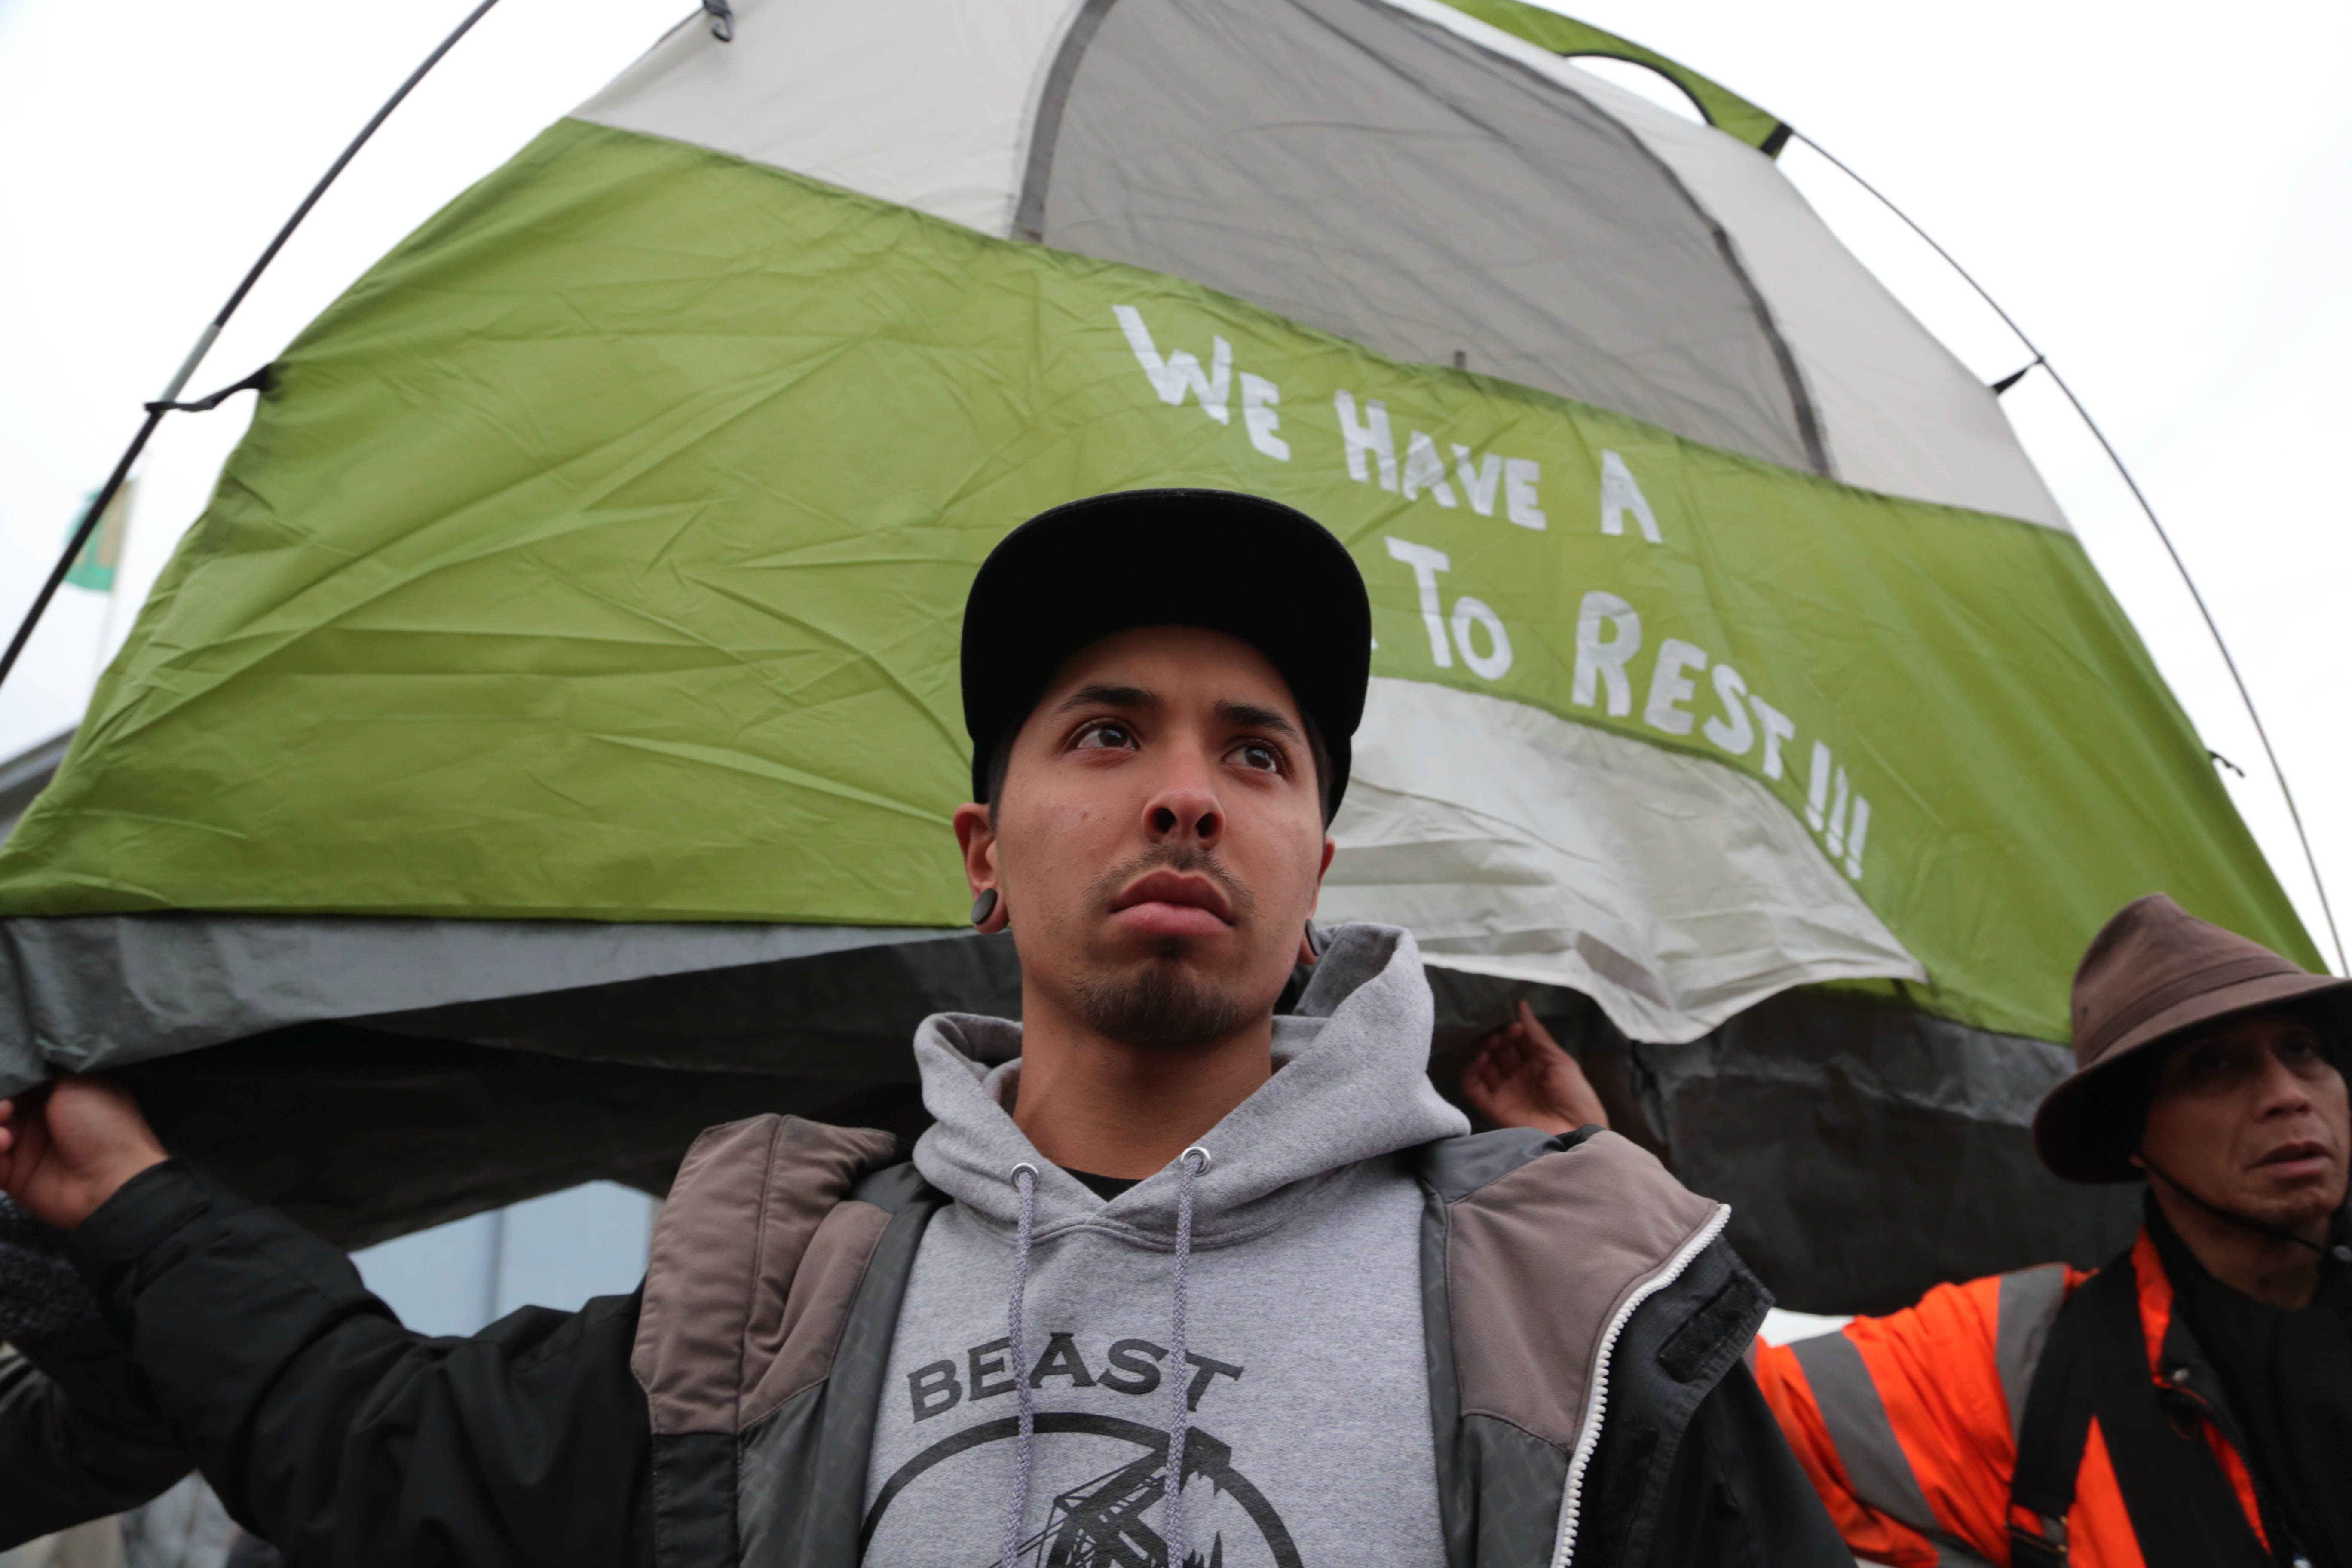 Angelo Chavez holds up a tent to prevent from being cited by police officers during a protest outside Super Bowl City. (Photo by Gabriella Angotti-Jones)